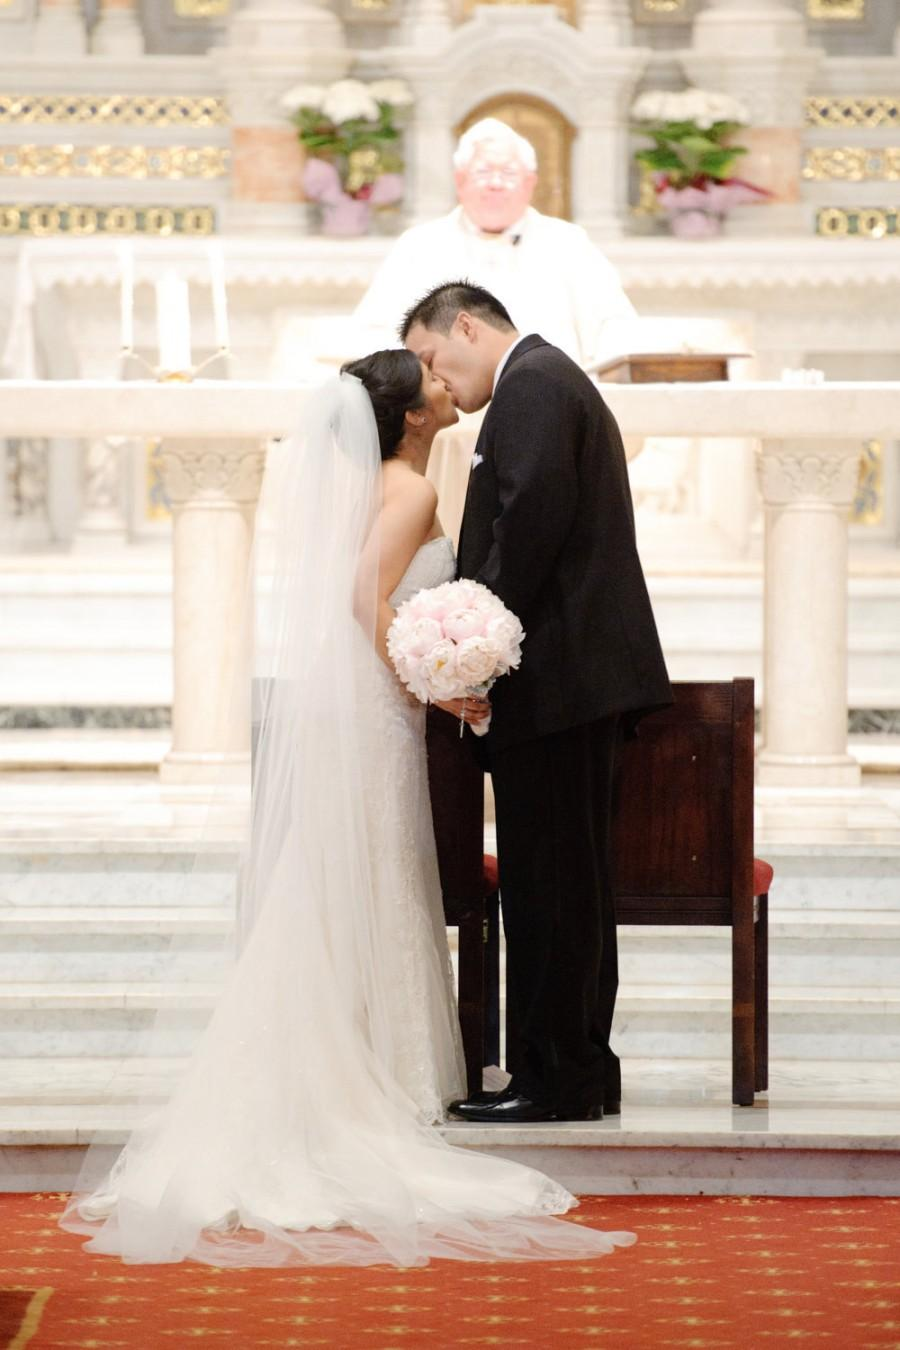 Wedding - Cathedral length two tier Wedding Bridal Veil 108 inches white, ivory or diamond